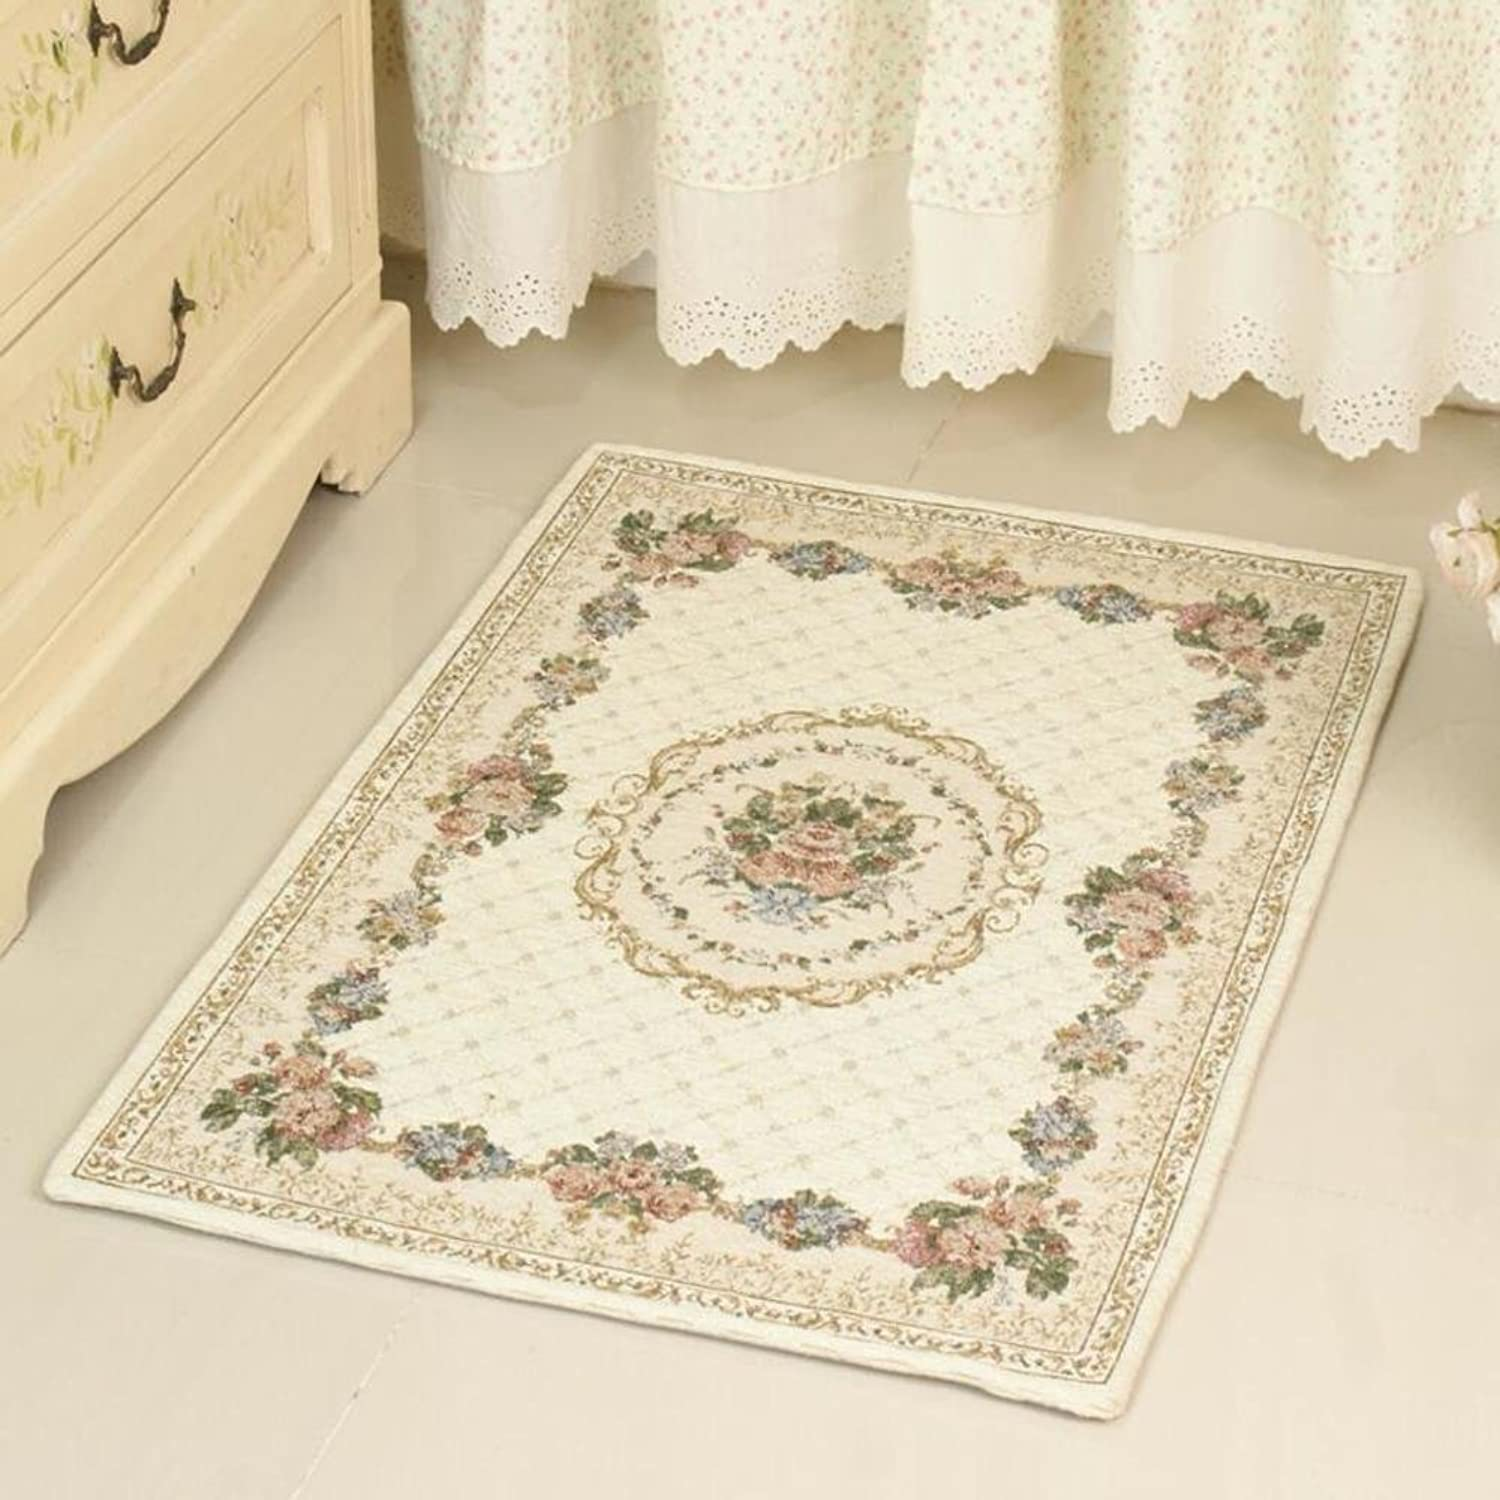 Doormat Rug Floor mat with European Style and Strong Water Dirt Absorption Anti-Slip Ability-K 70x140cm(28x55inch)